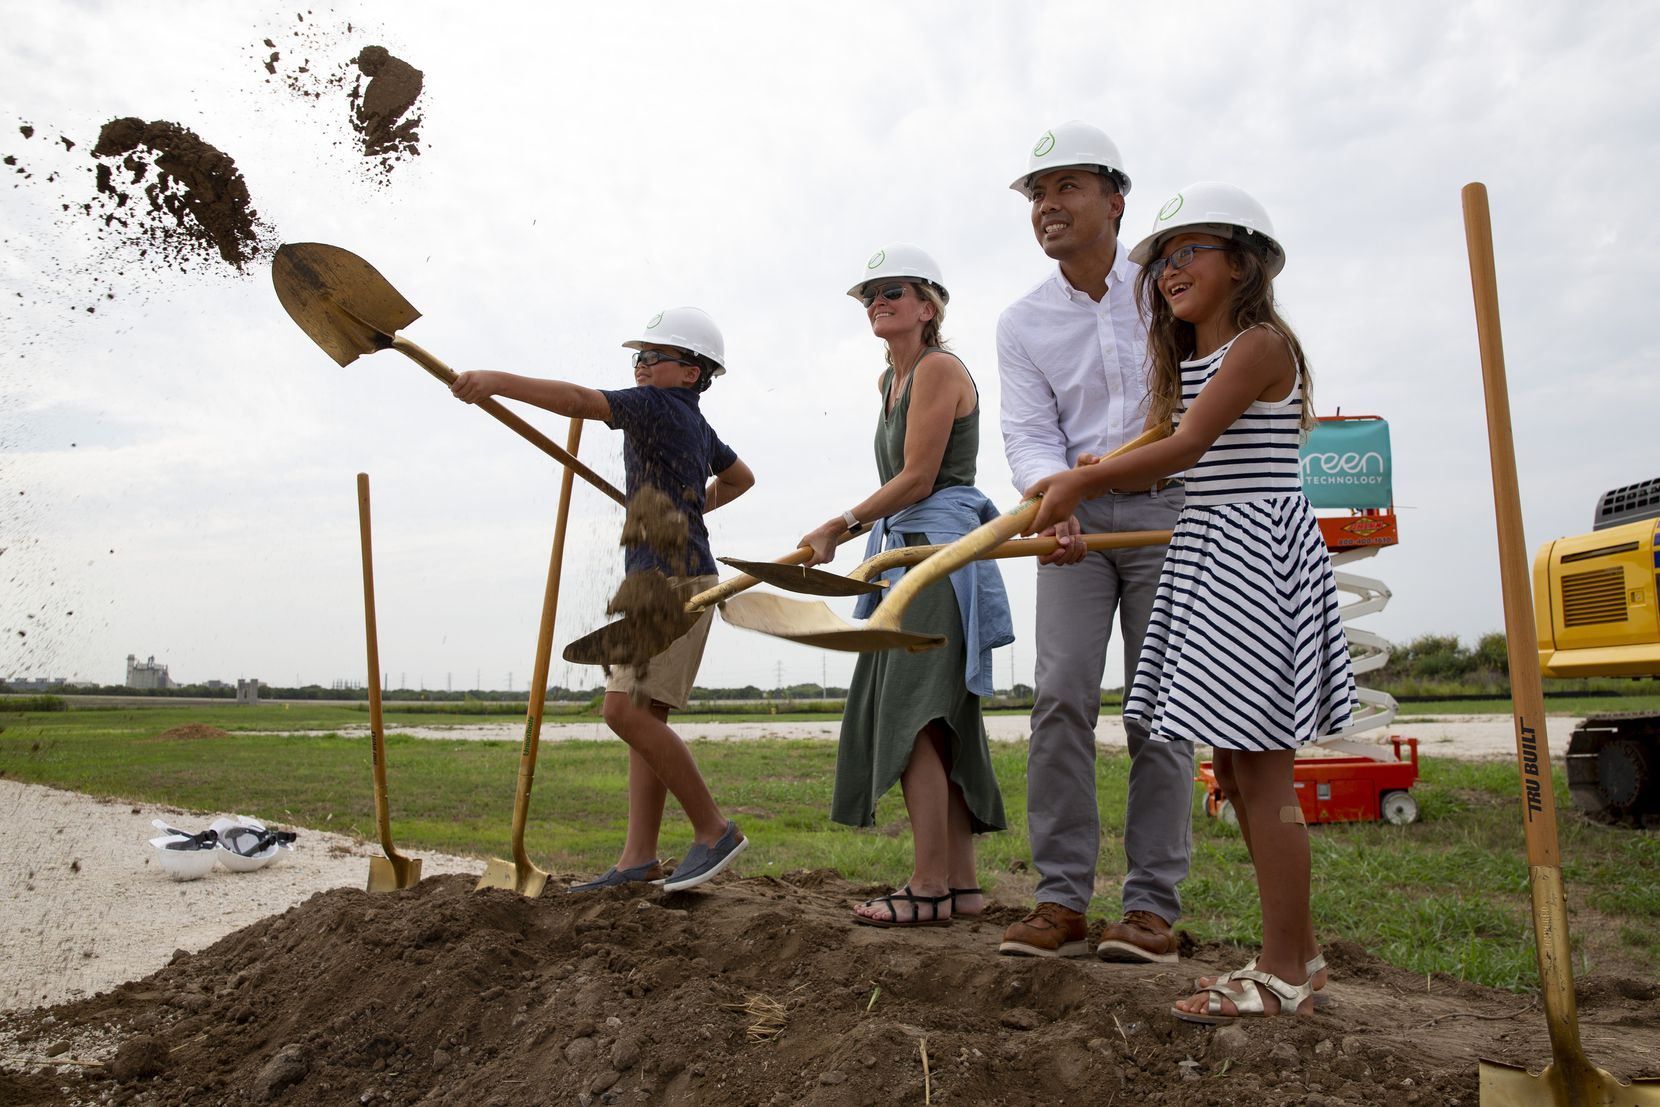 Eden Green CEO Eddy Badrina (second from right) breaks ground with his family on the company's new greenhouse.